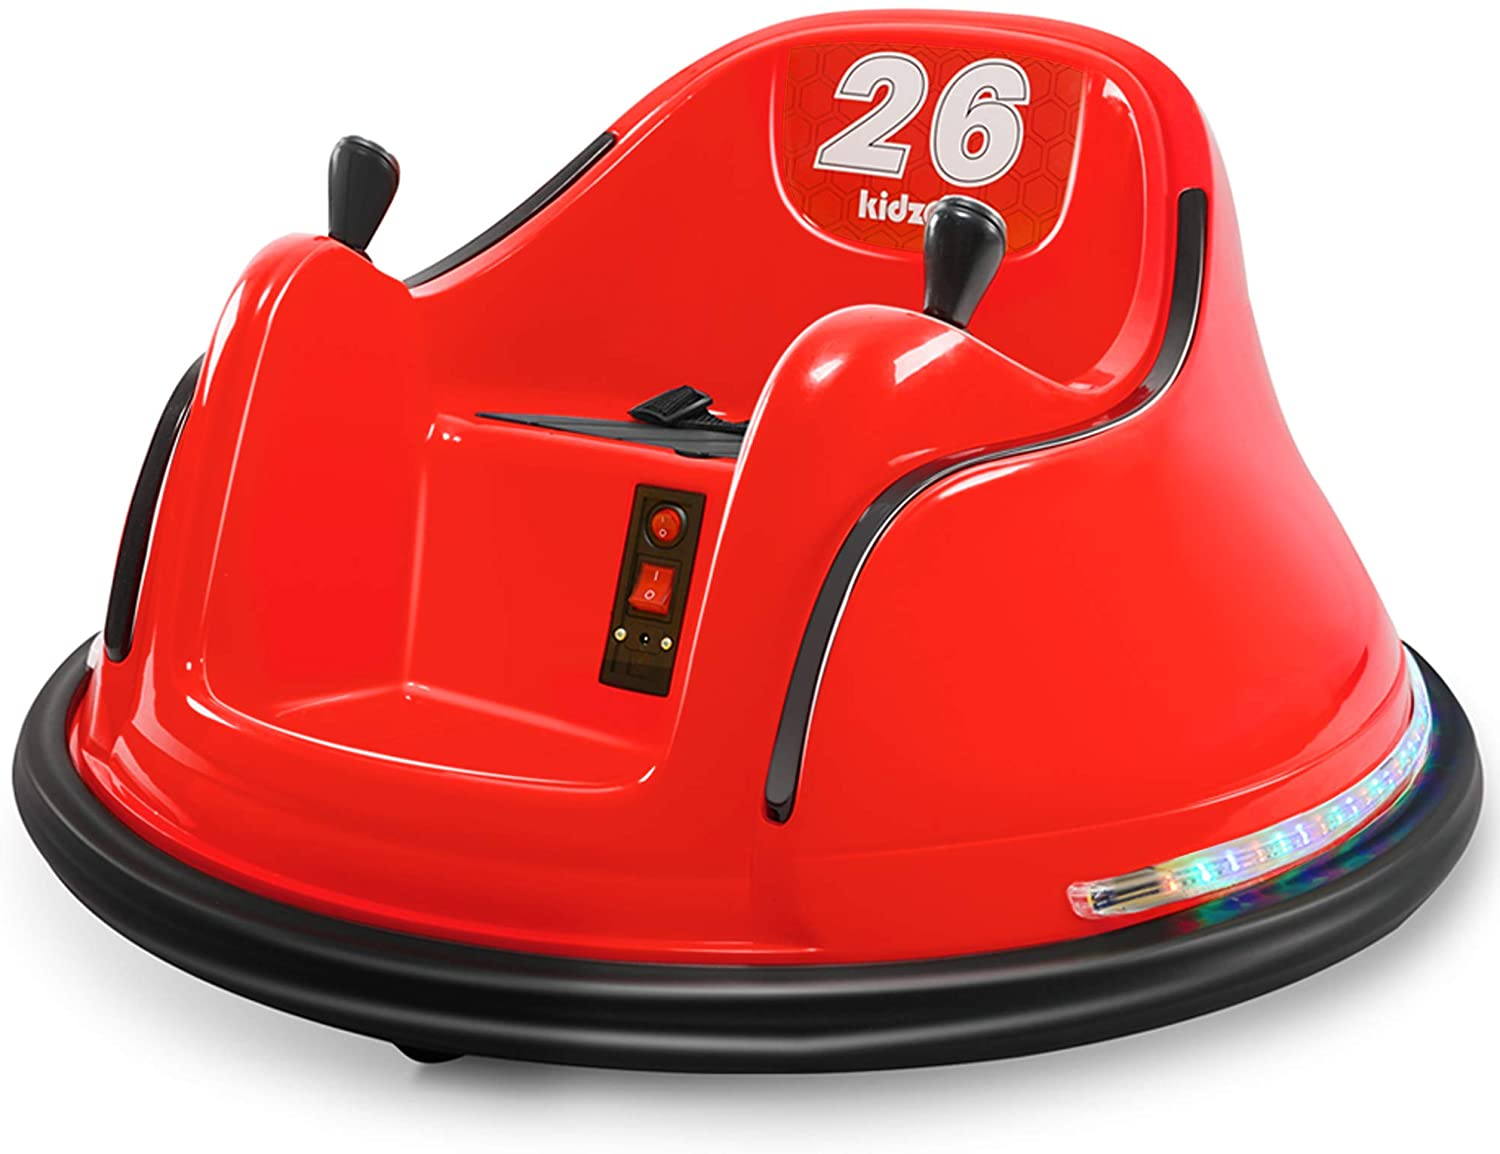 Ride On Bumper Car Vehicle Remote Control 360 Spin, $179 @amazon.com